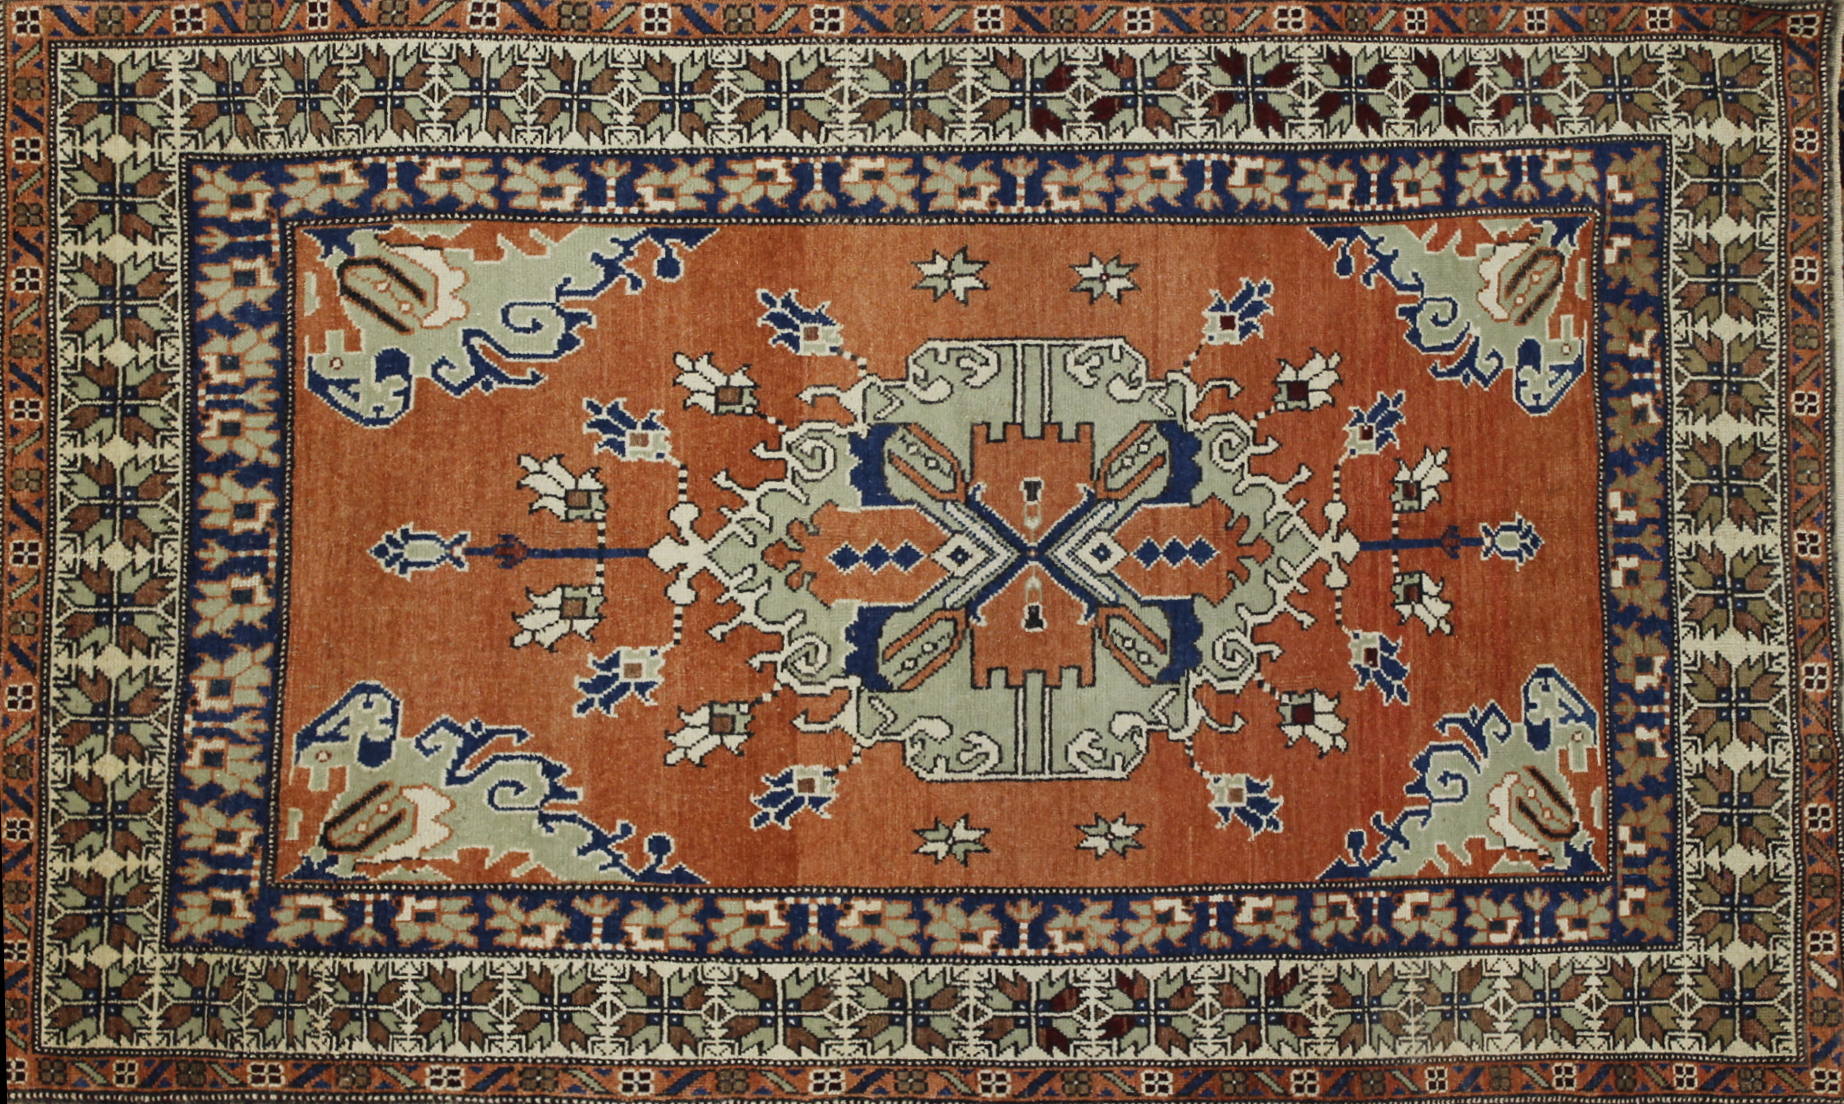 5x7/8 Tribal Hand Knotted Wool Area Rug - MR022594